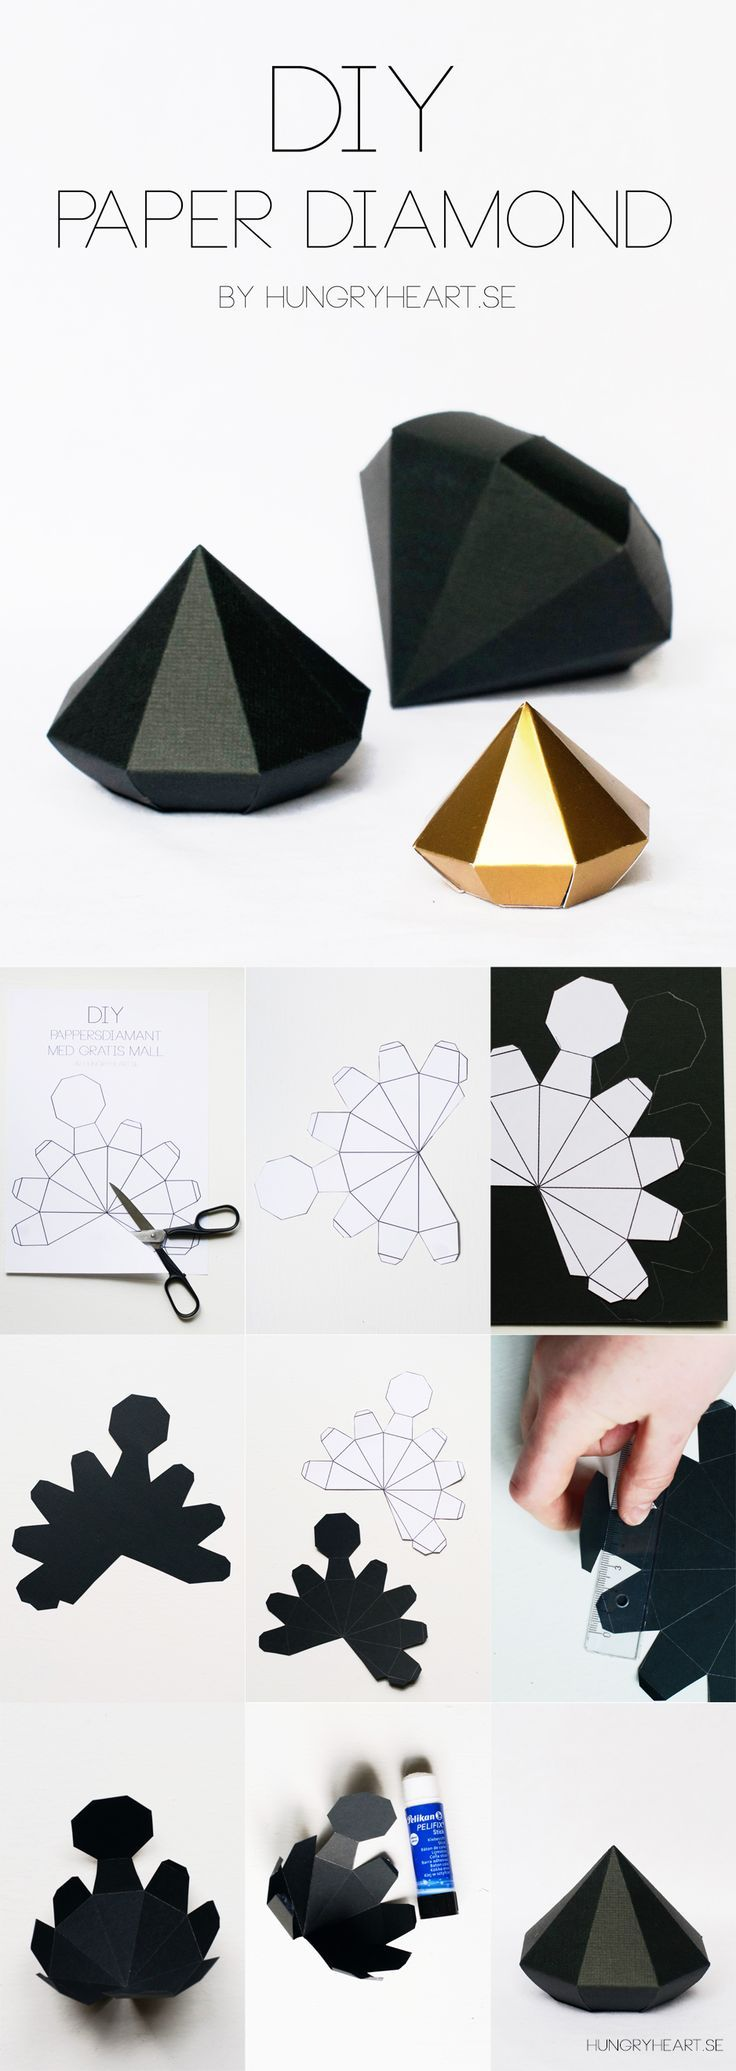 Tendance Joaillerie 2017   DIY Pappersdiamant med gratis mall | DIY Paper Diamond Tutorial with FREE Template